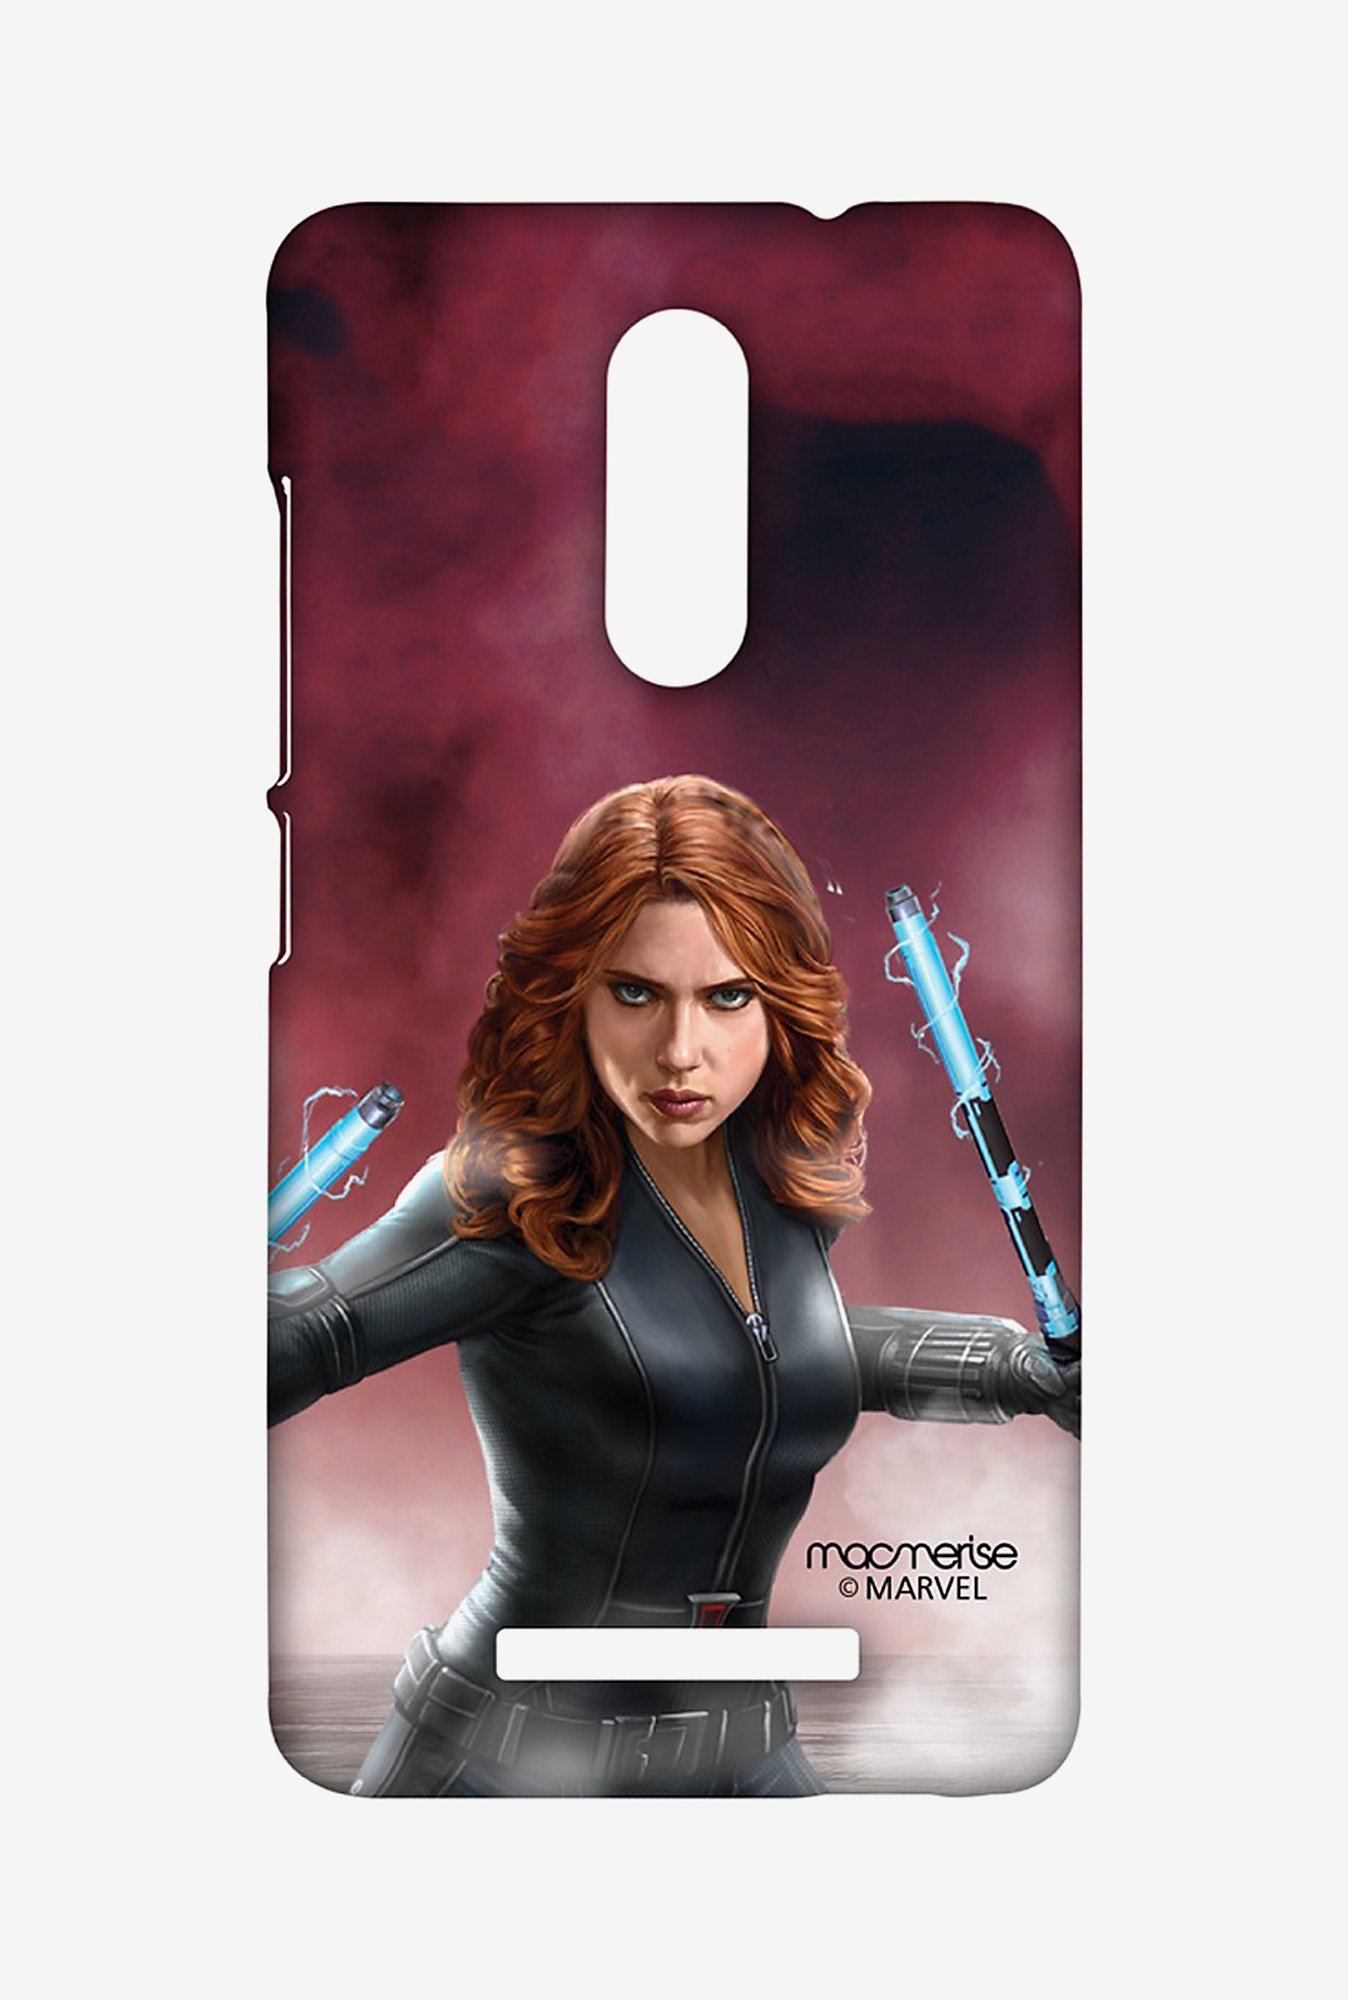 Macmerise XACN3SMM0596 Team Red Black Widow Sublime Case for Xiaomi Redmi Note 3